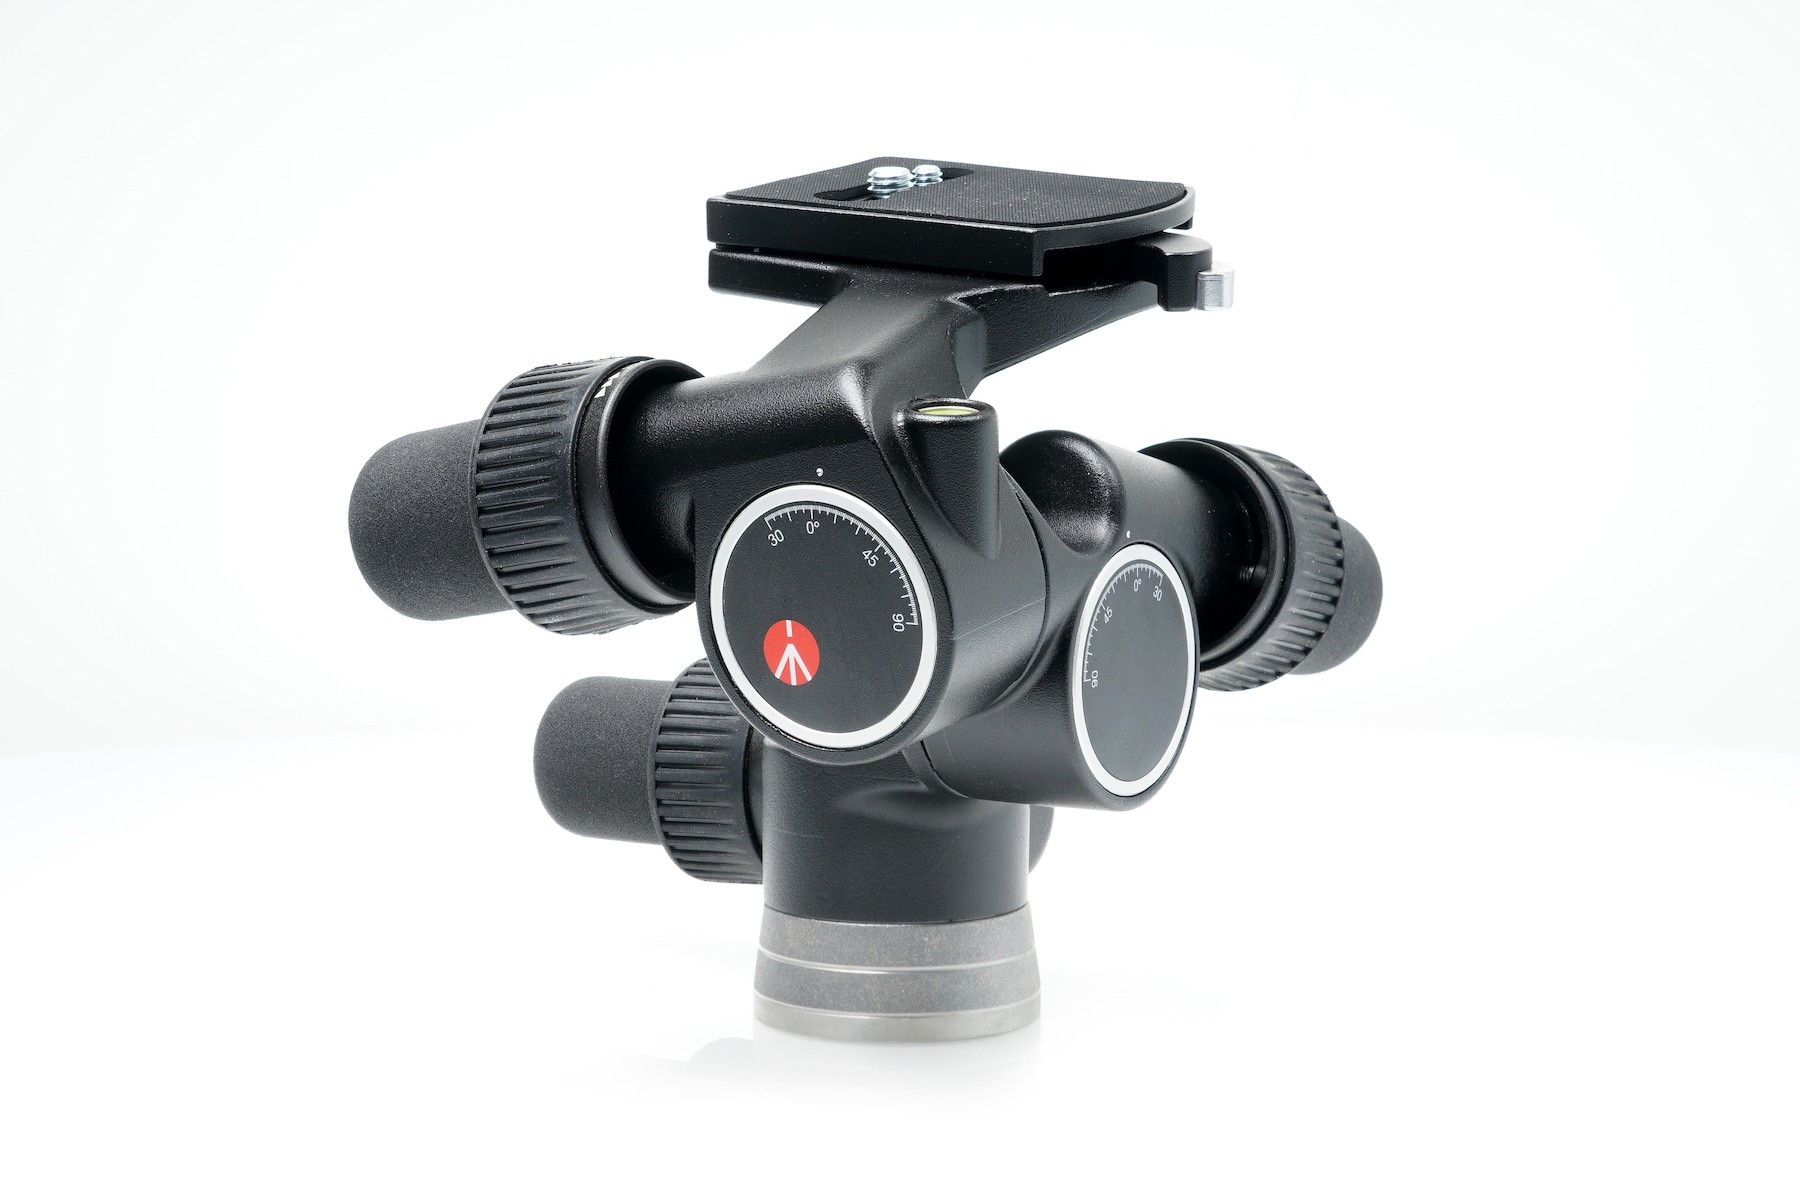 Image ©Manfrotto